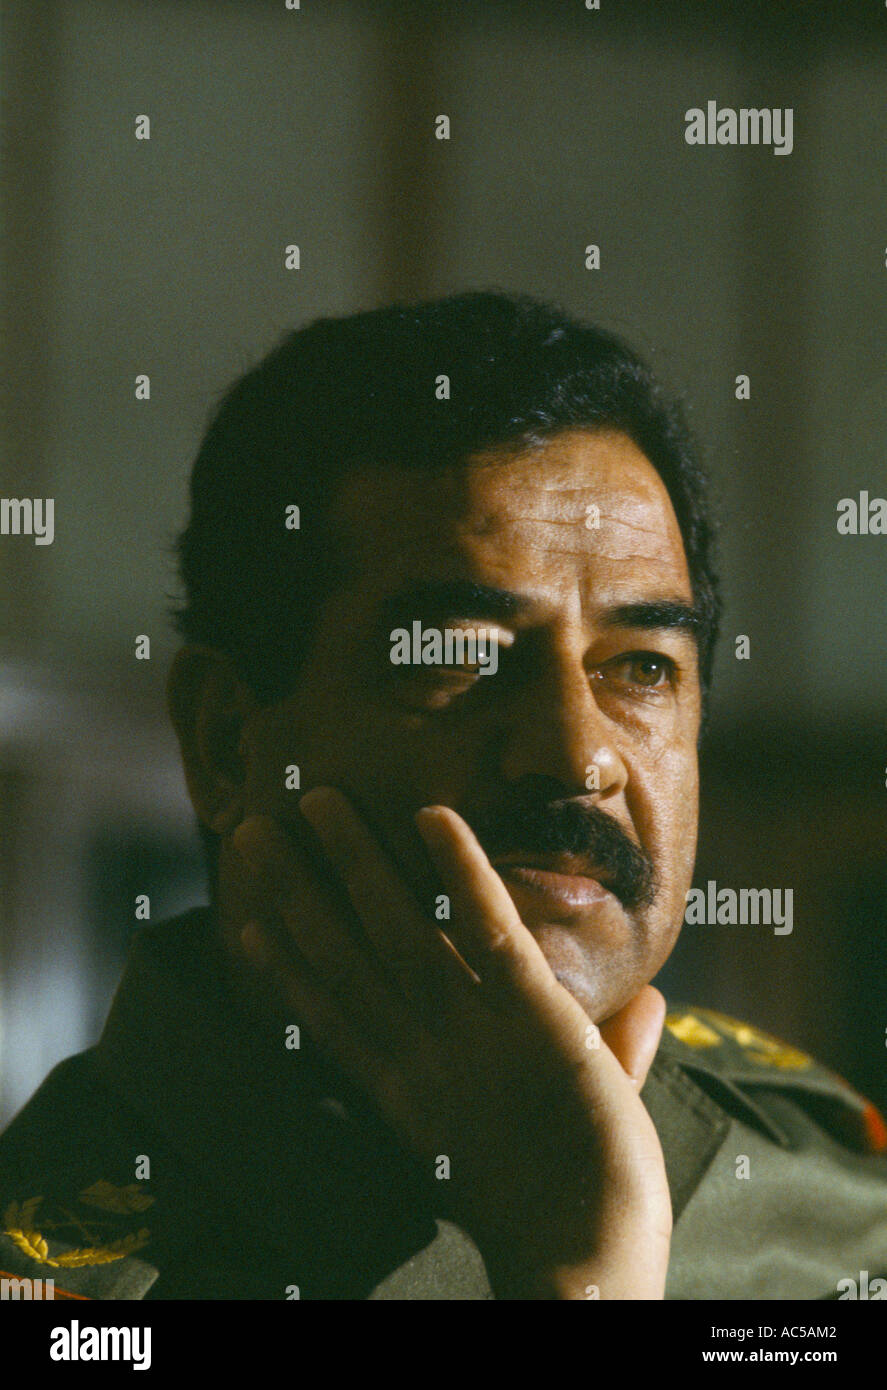 """a comparison of saddam hussein and mohandus gandhi The regimes of saddam hussein and hosni mubarak both opposed the expansion of iranian power before they were deposed now islamists are courting those populist movements unleashed by the """"arab spring,"""" raising new concerns for us security interests in the region."""